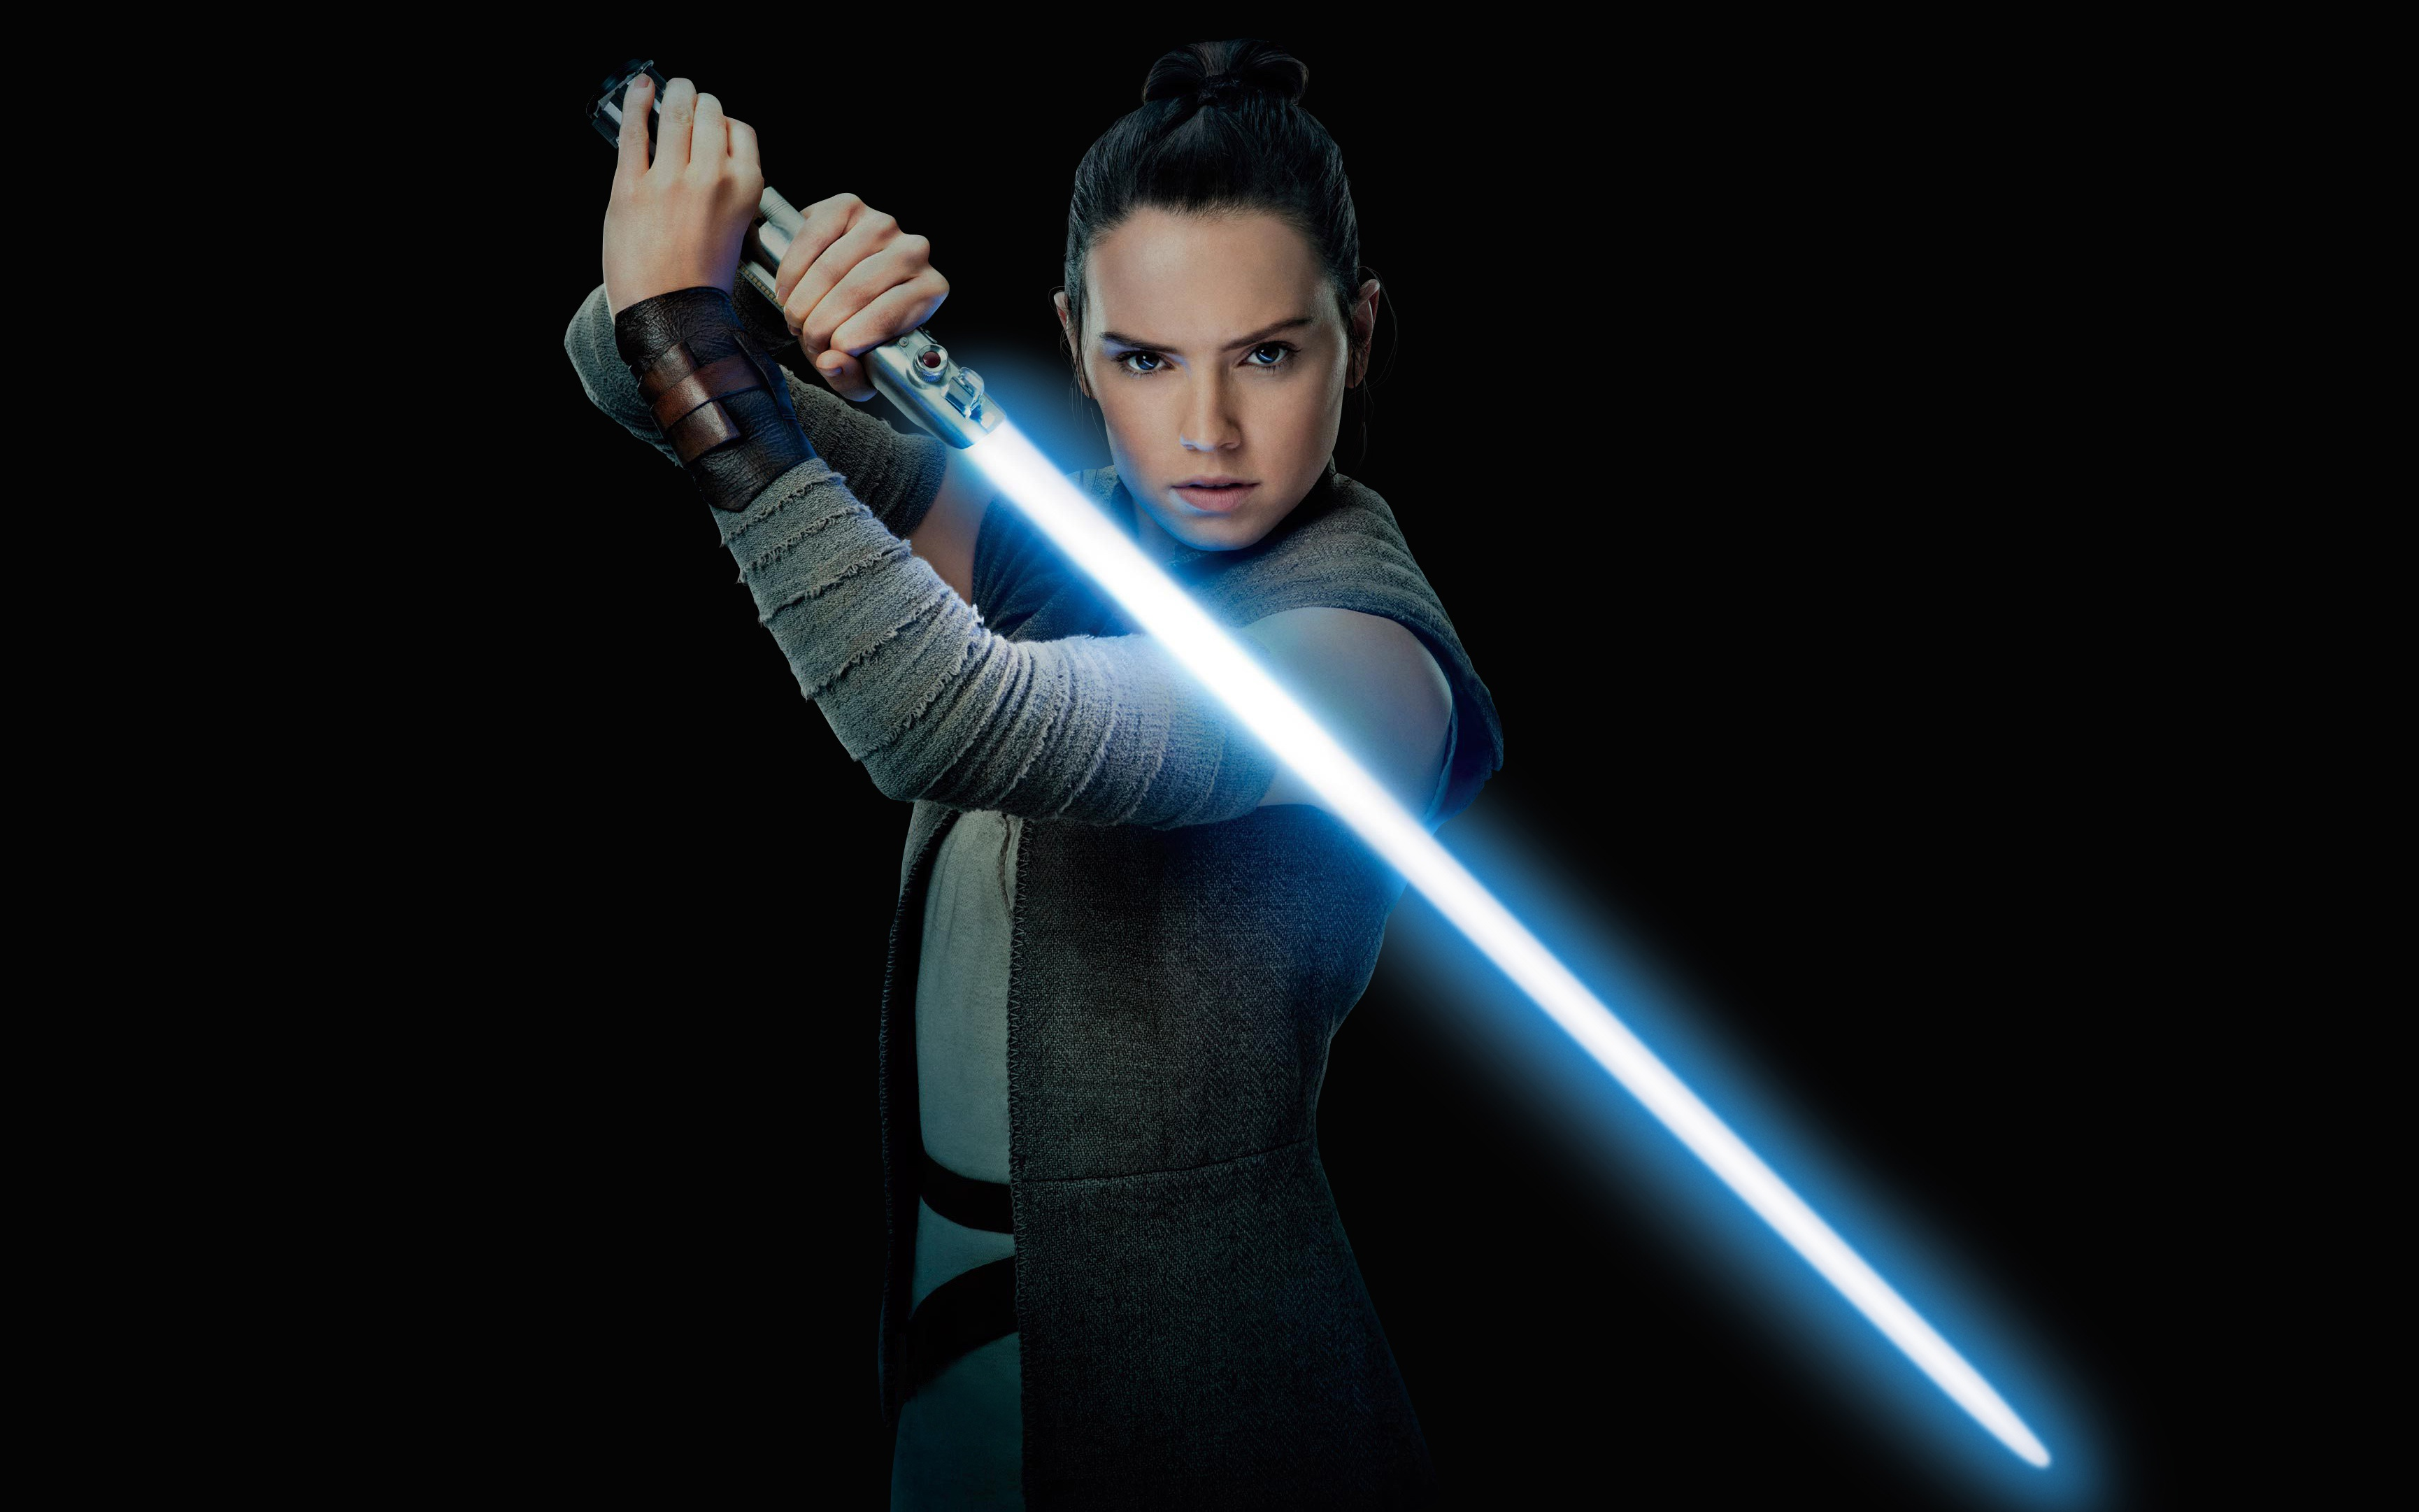 1440x2960 Daisy Ridley As Rey Star Wars In The Last Jedi Samsung Galaxy Note 9 8 S9 S8 S8 Qhd Wallpaper Hd Movies 4k Wallpapers Images Photos And Background